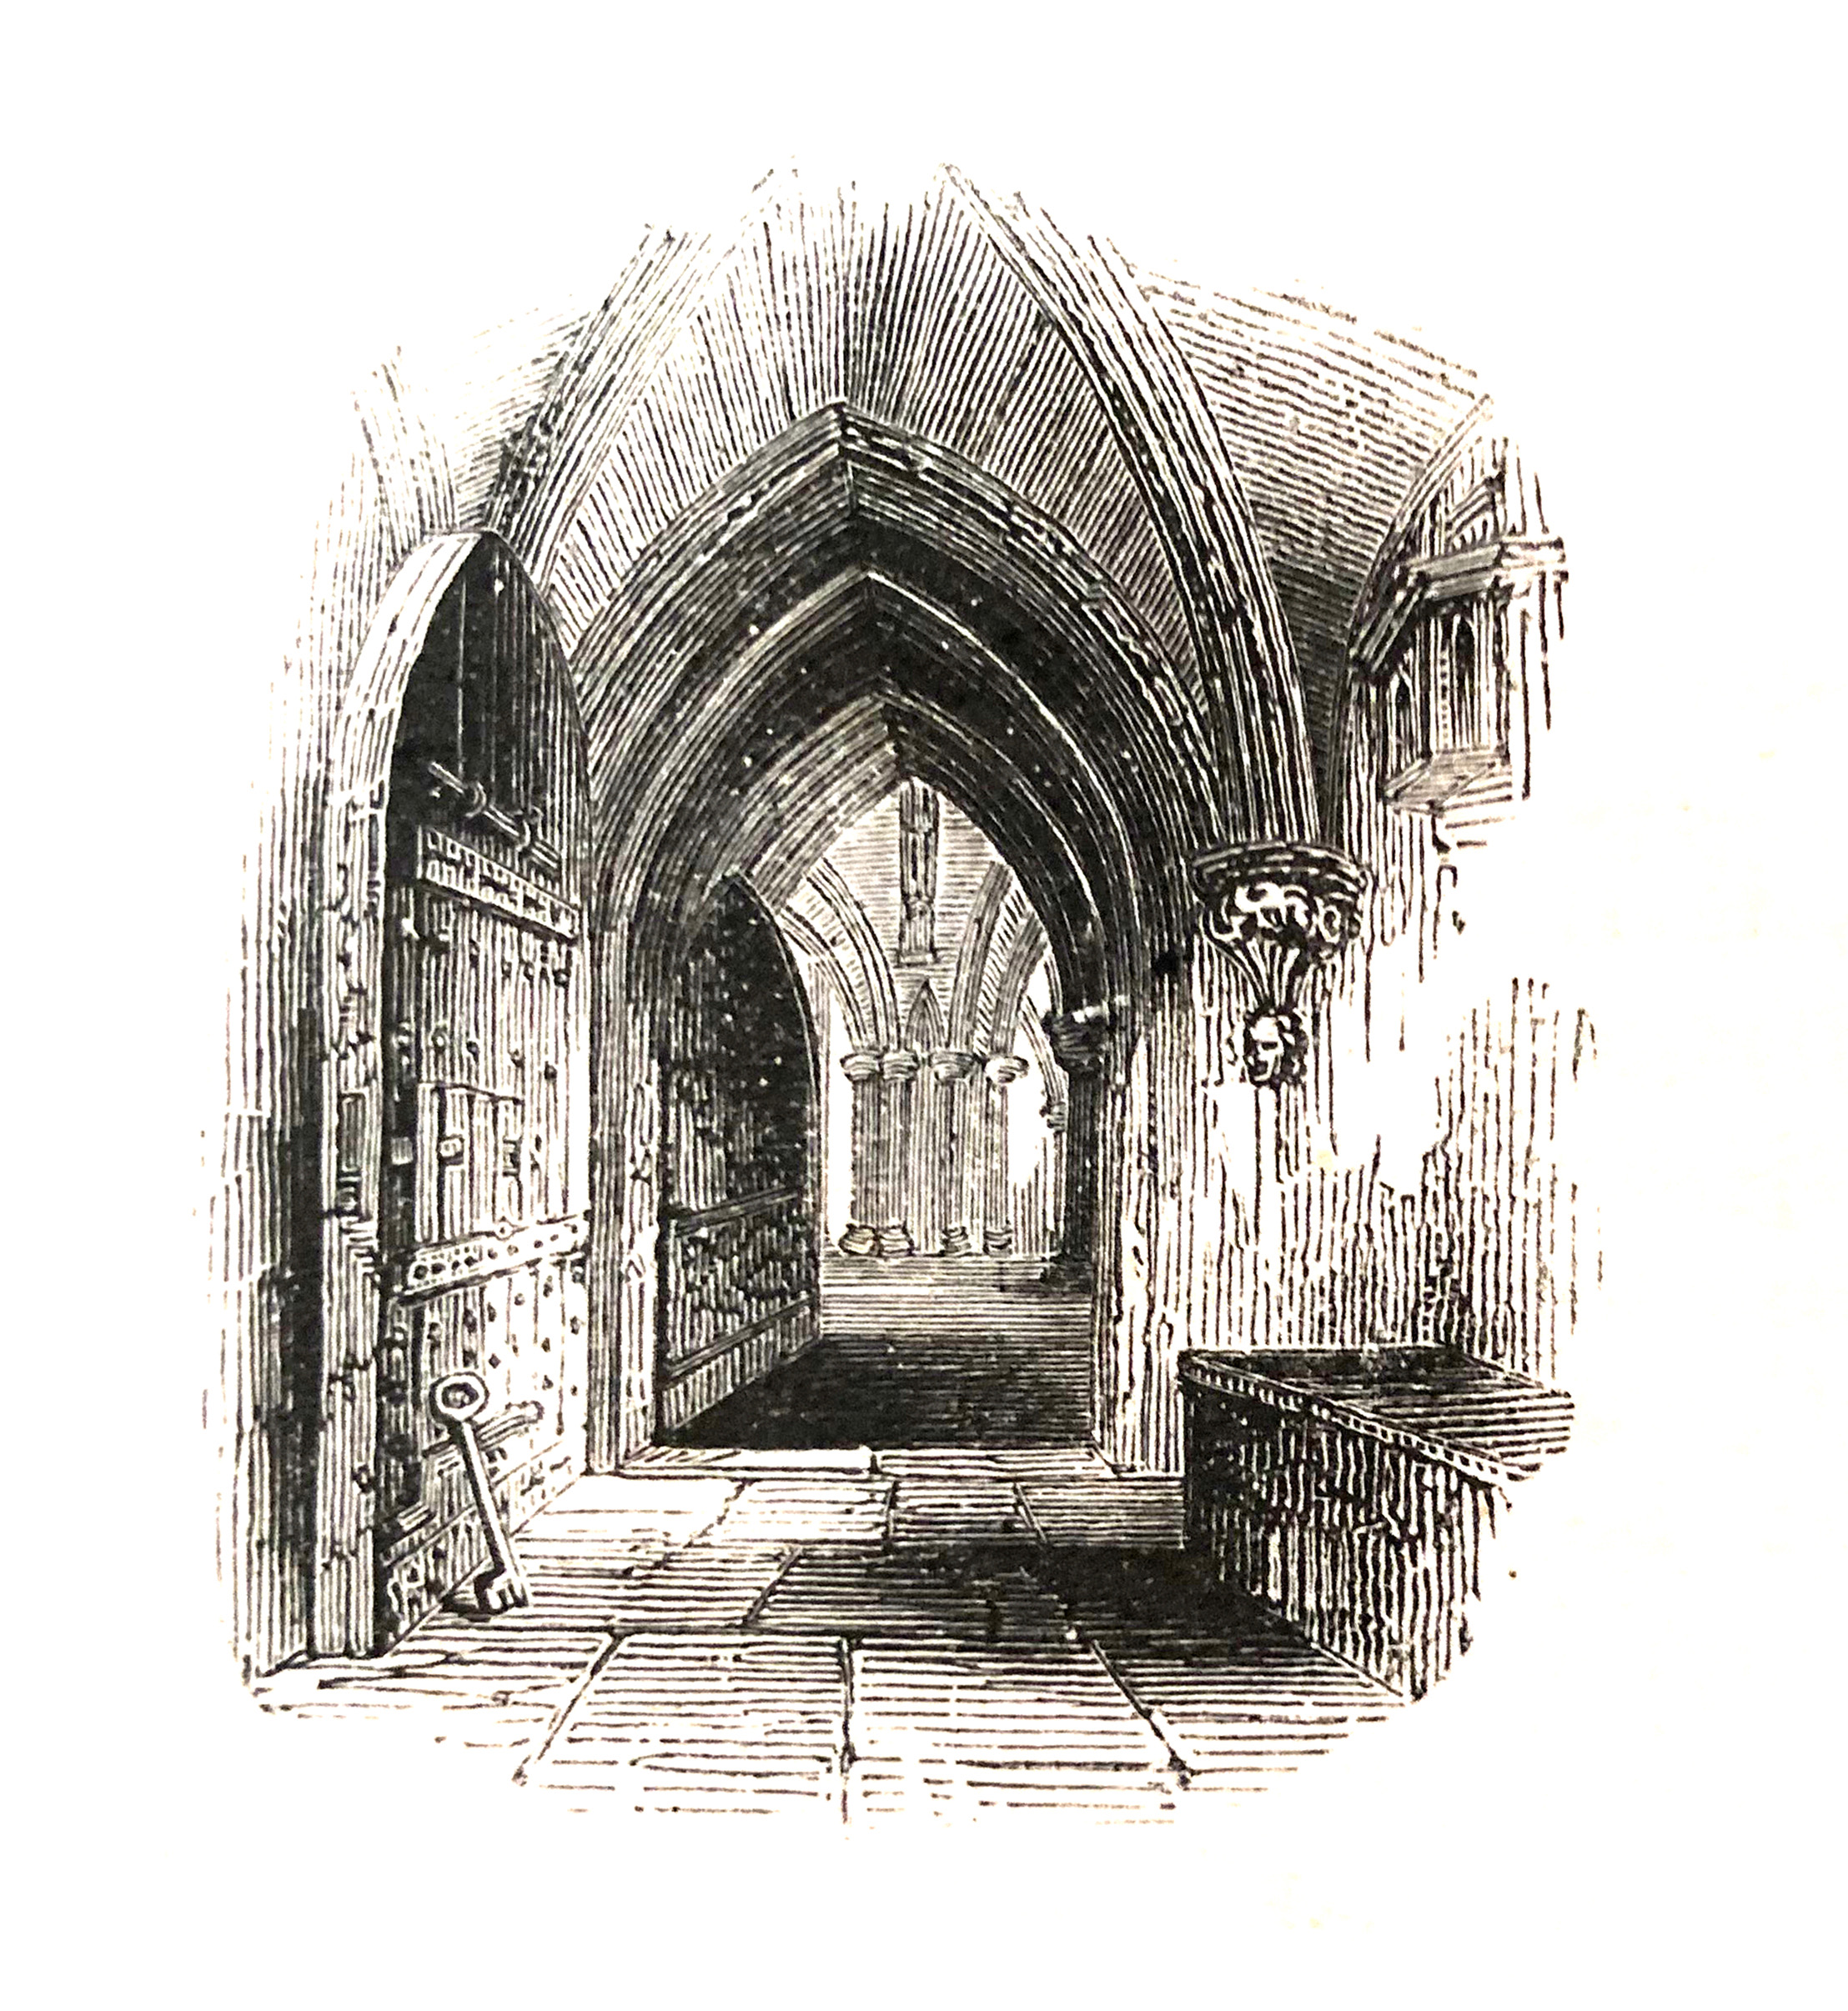 Dessin en noir et blanc d'une porte d'église. // Black and white drawing of a church door.